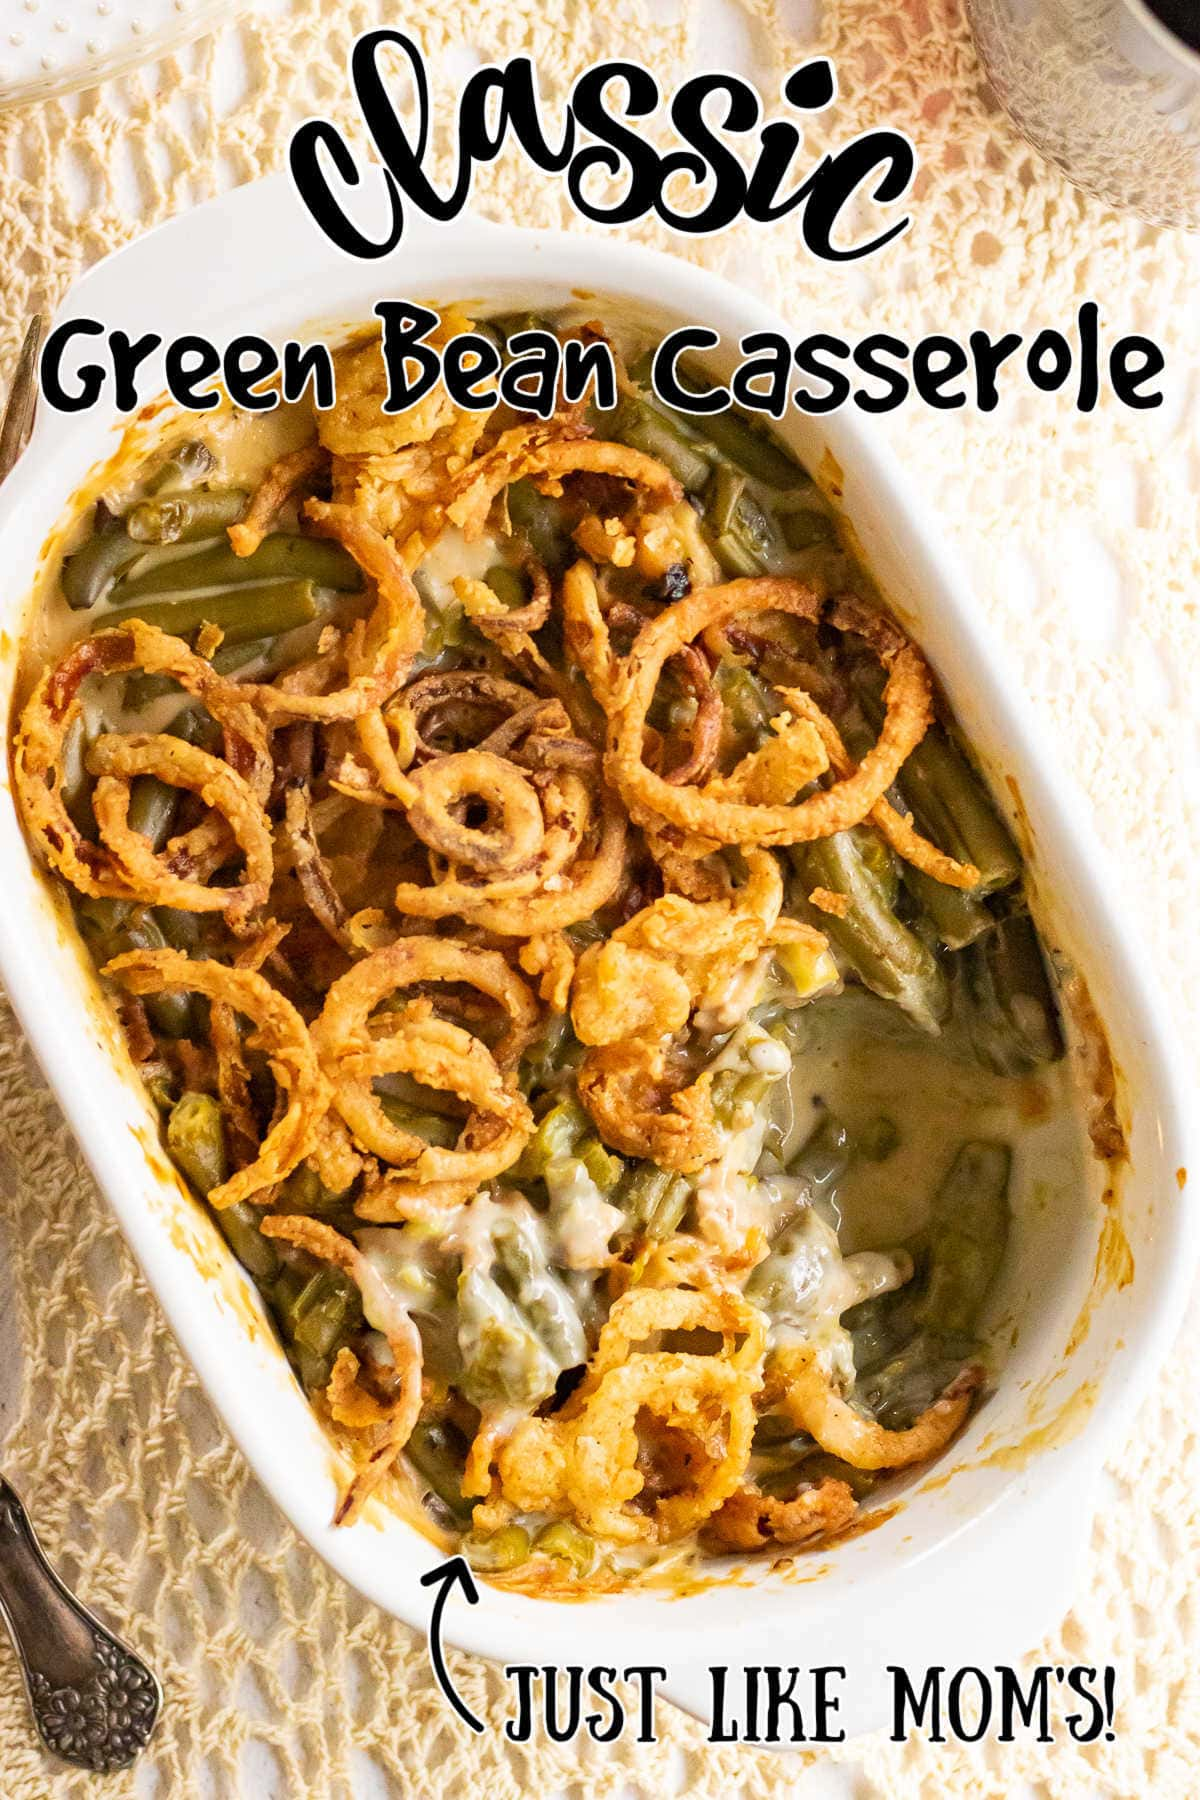 Overhead view of finished casserole with title text overlay.